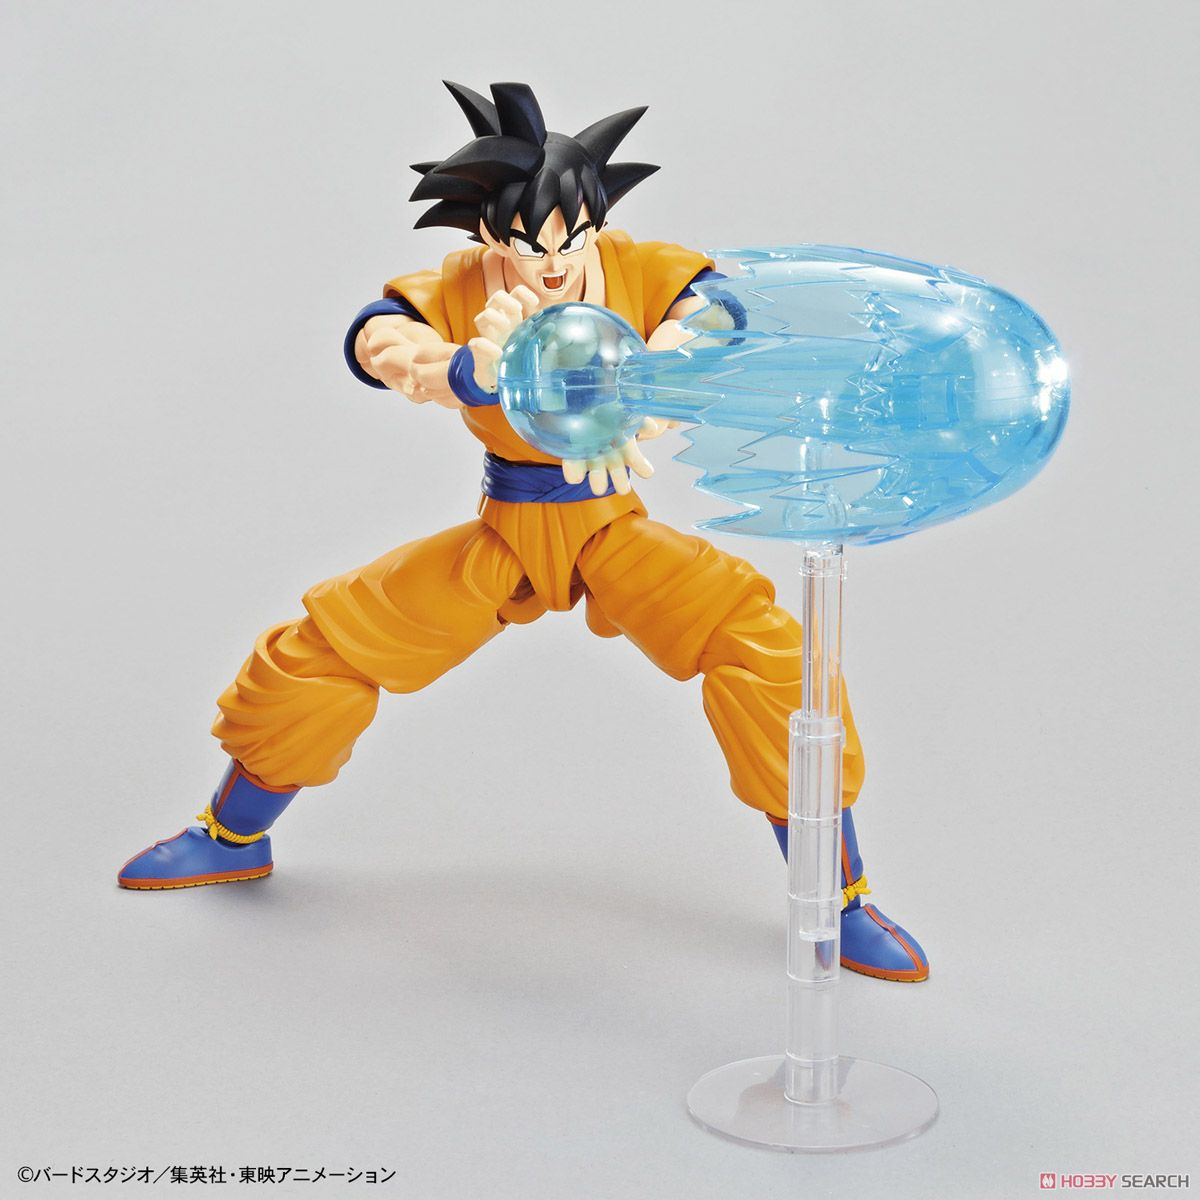 Figure-rise Standard Son Goku & Klilyn DX Set (Plastic model) Item picture7